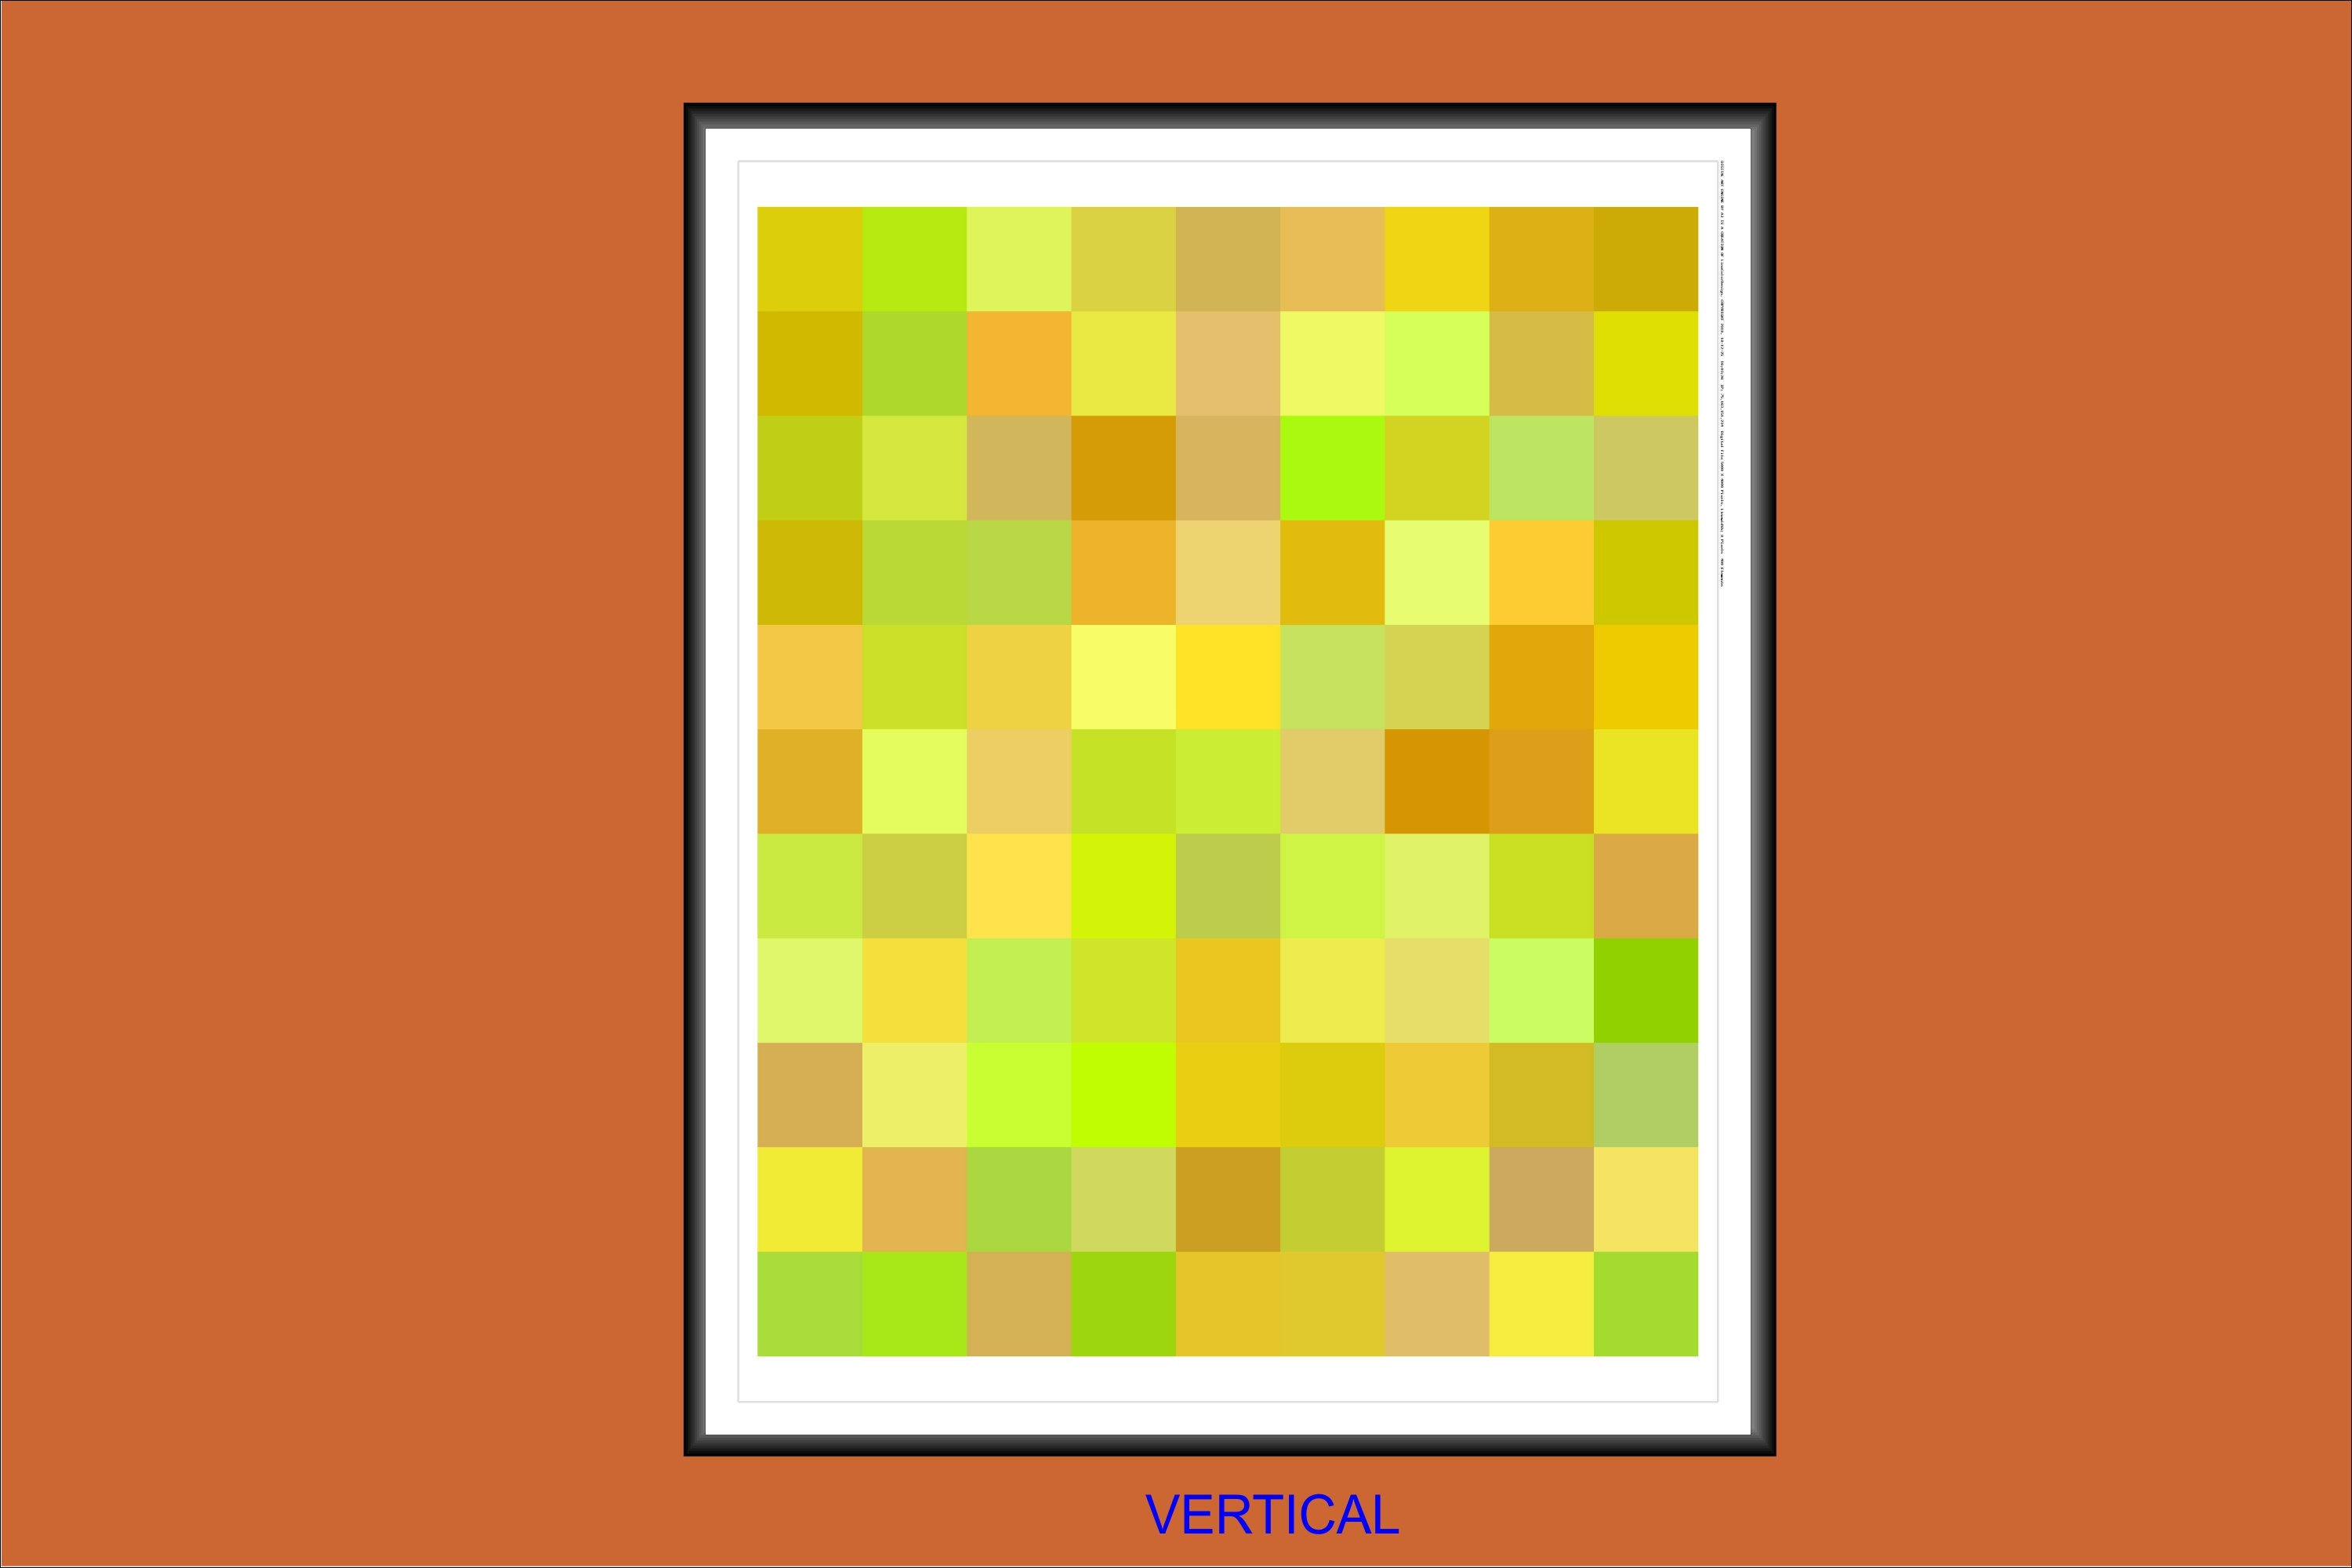 Pixel Art 16x20 Inch Geometric Harvest Colors Art Print A Colorful Piece Of Computer Art For A Creative Home Or Work Space 16x20138